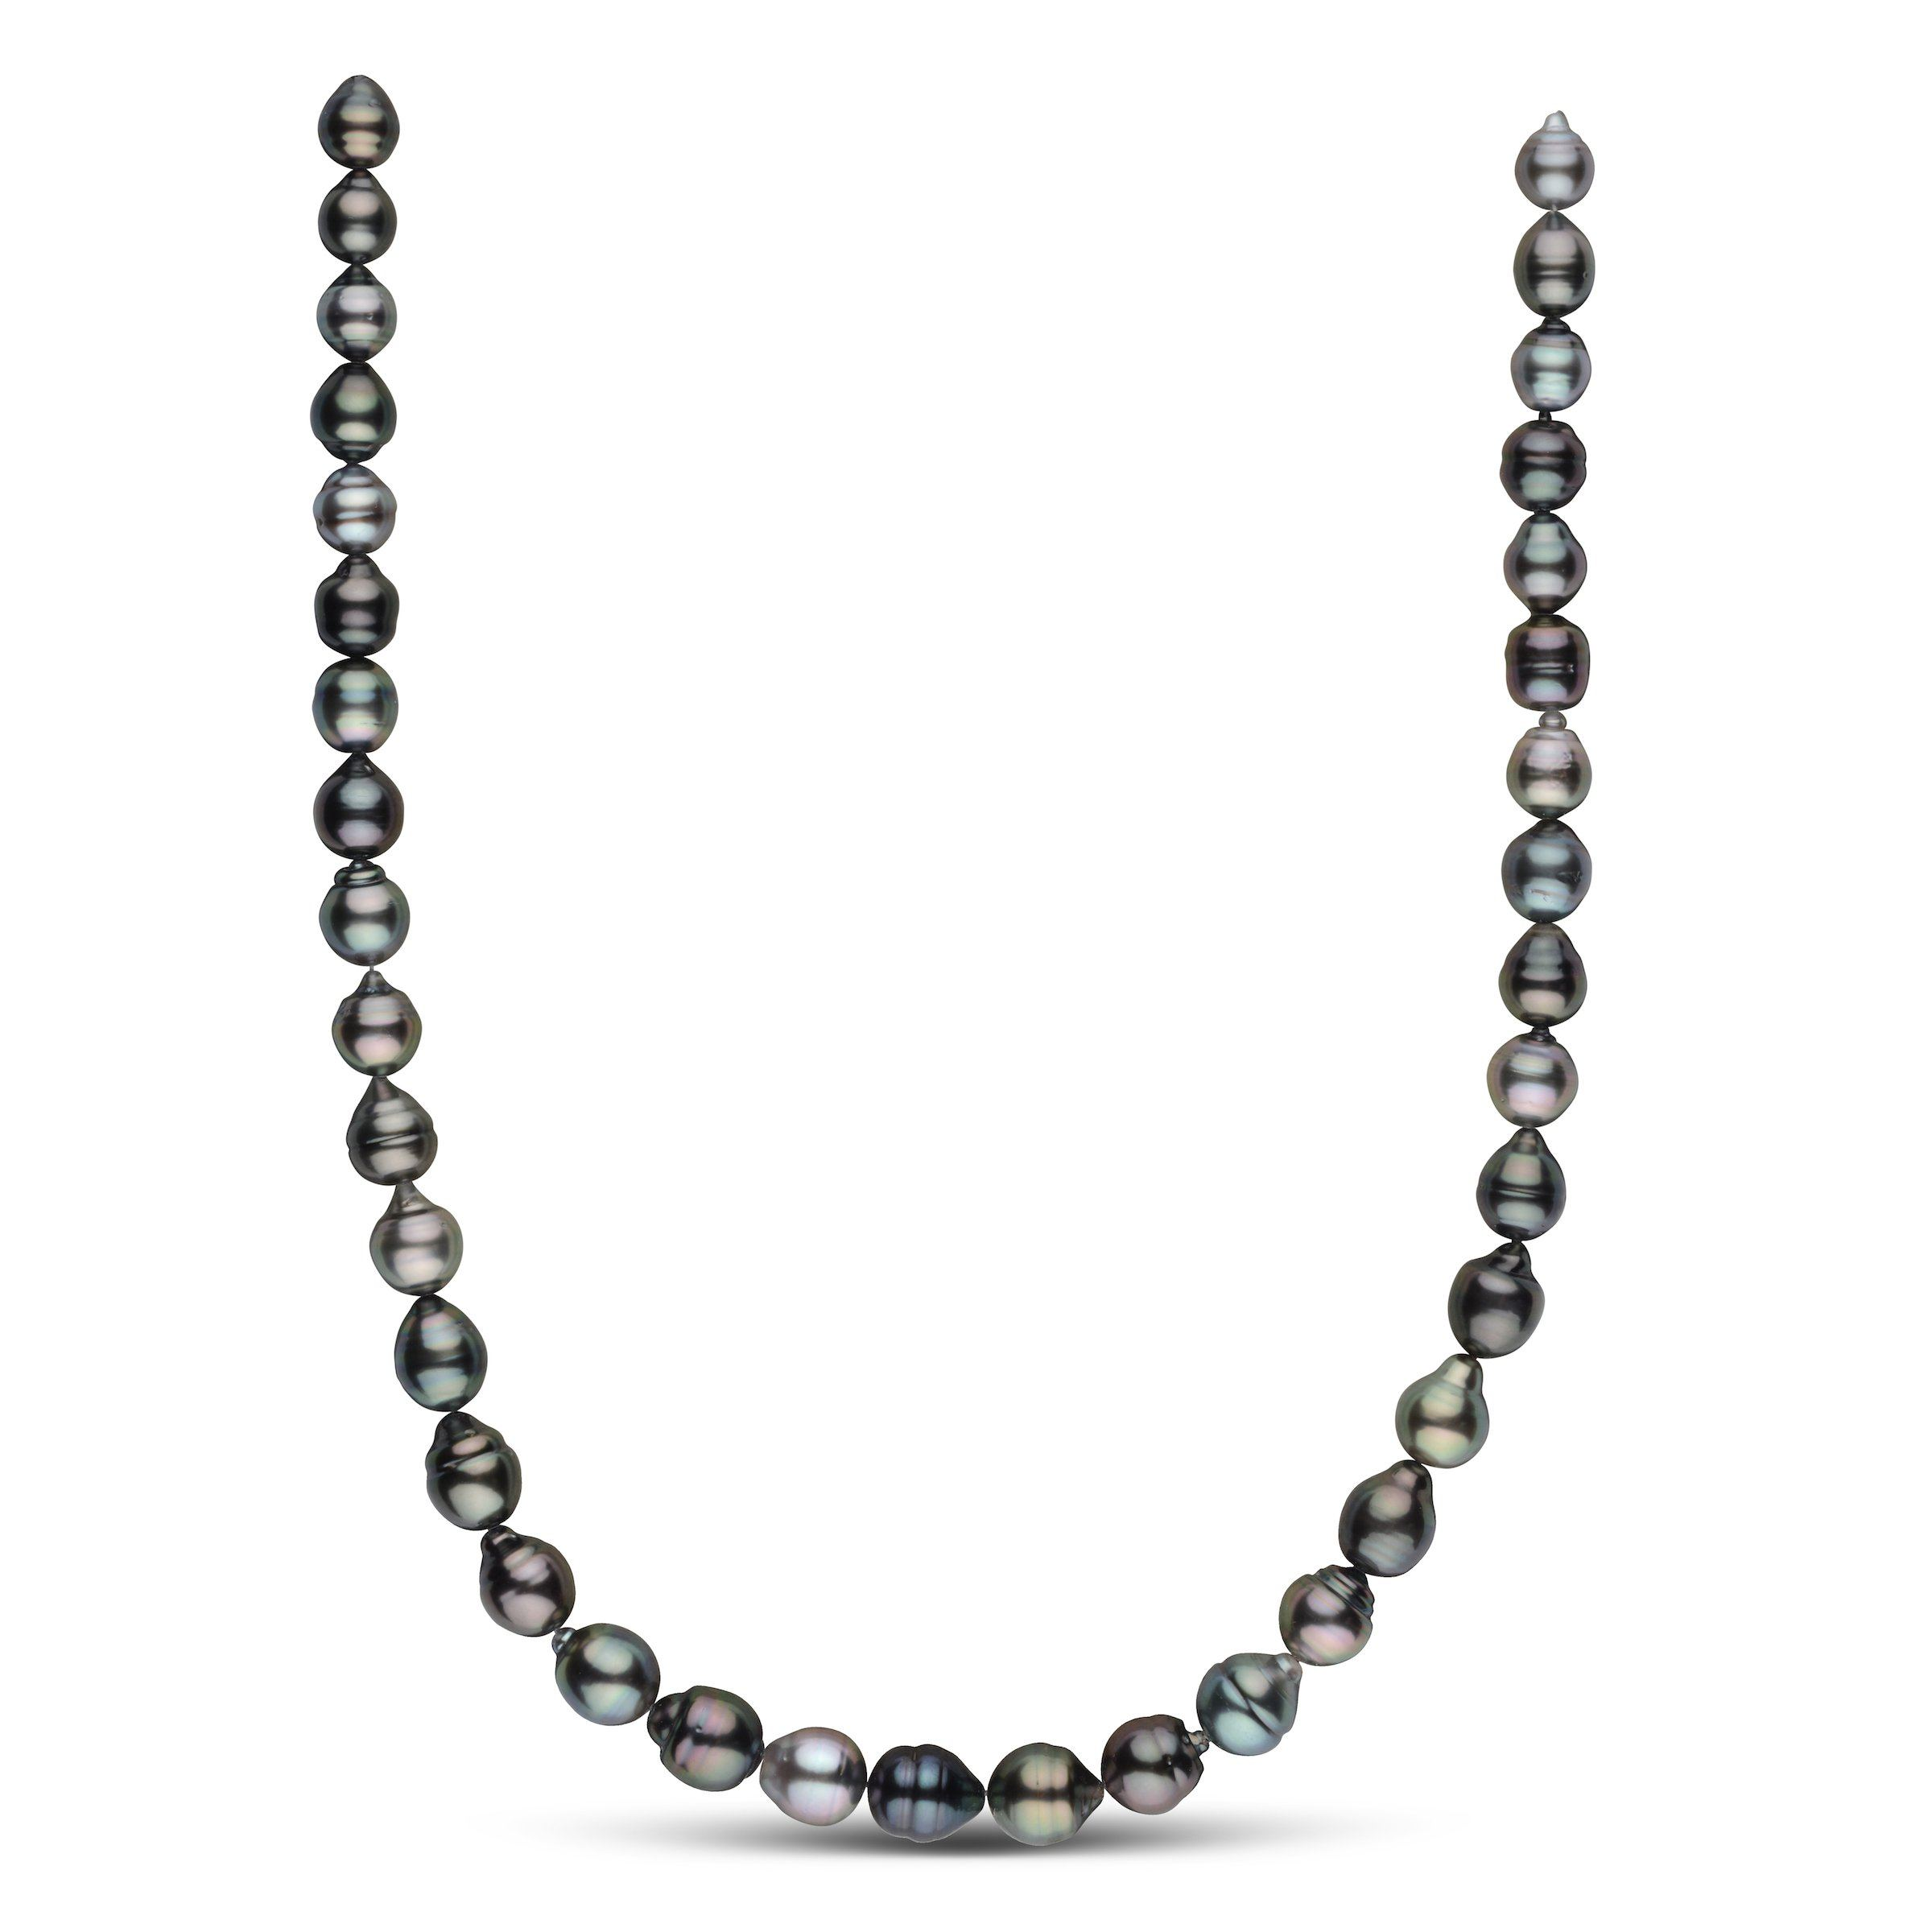 8.1-10.4 mm AAA Tahitian Baroque Pearl Necklace